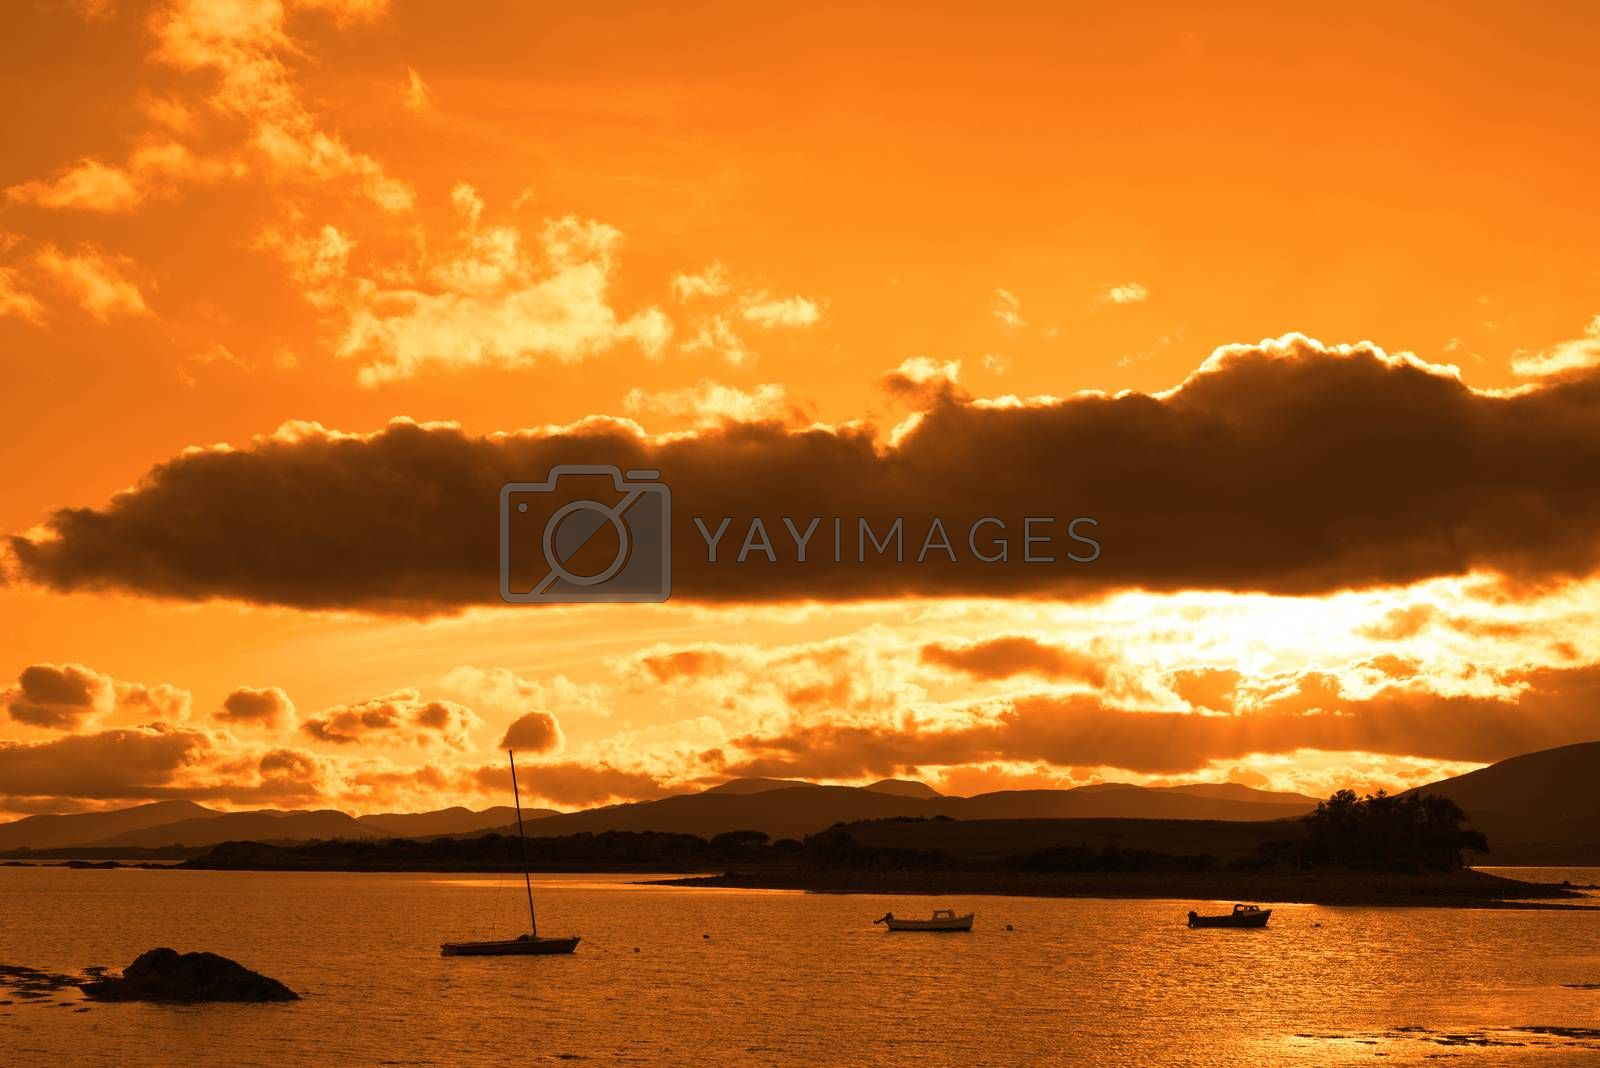 boats in a quiet bay with island near kenmare on the wild atlantic way ireland with an orange sunset